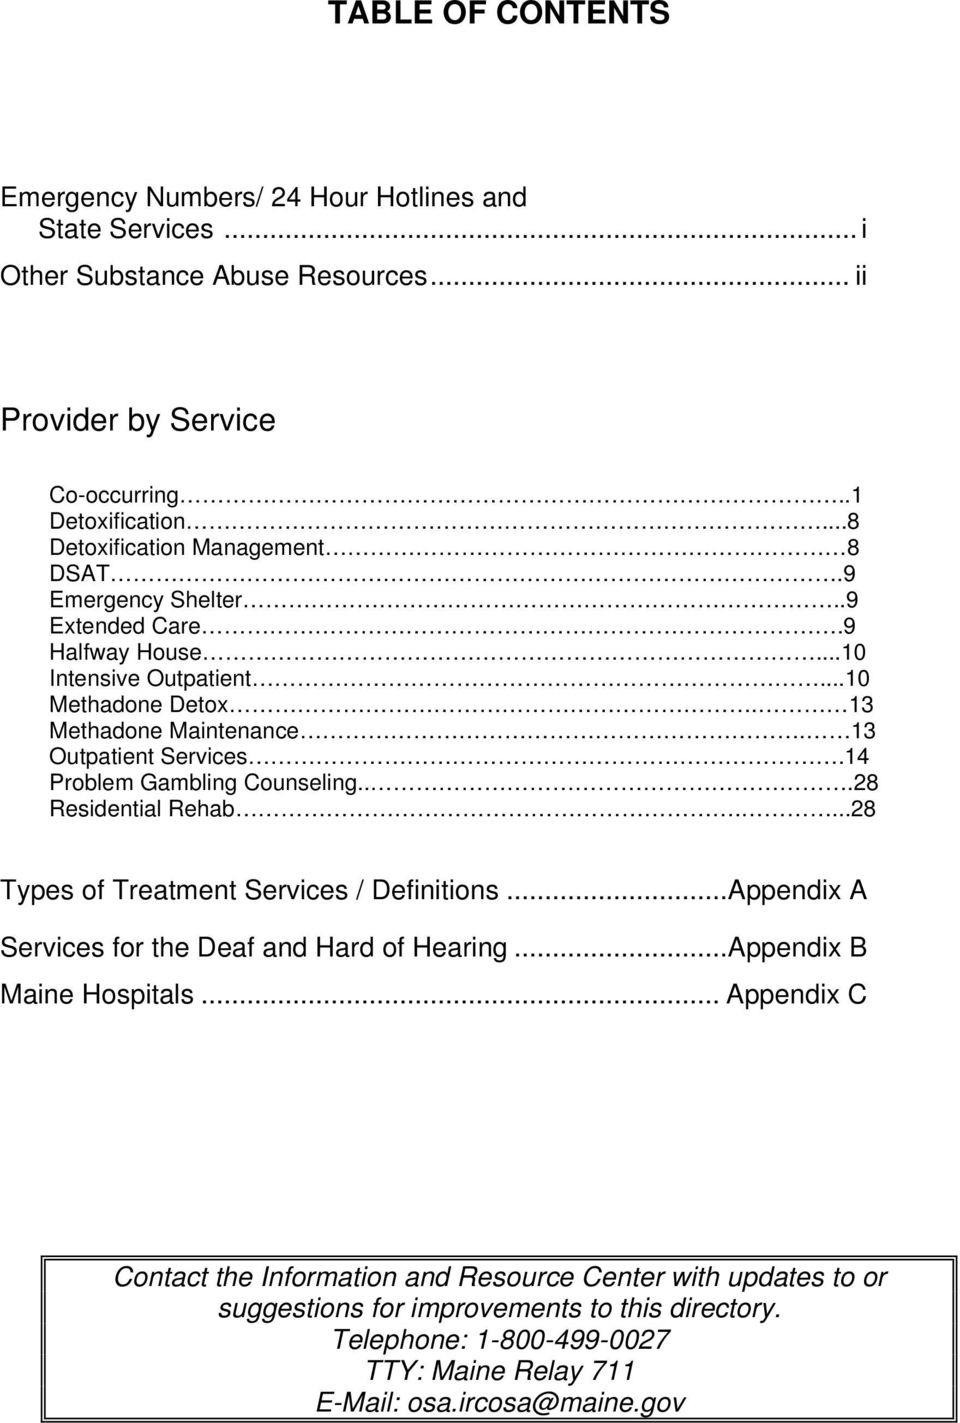 13 Outpatient Services.14 Problem Gambling Counseling...28 Residential Rehab....28 Types of Treatment Services / Definitions... Appendix A Services for the Deaf and Hard of Hearing.